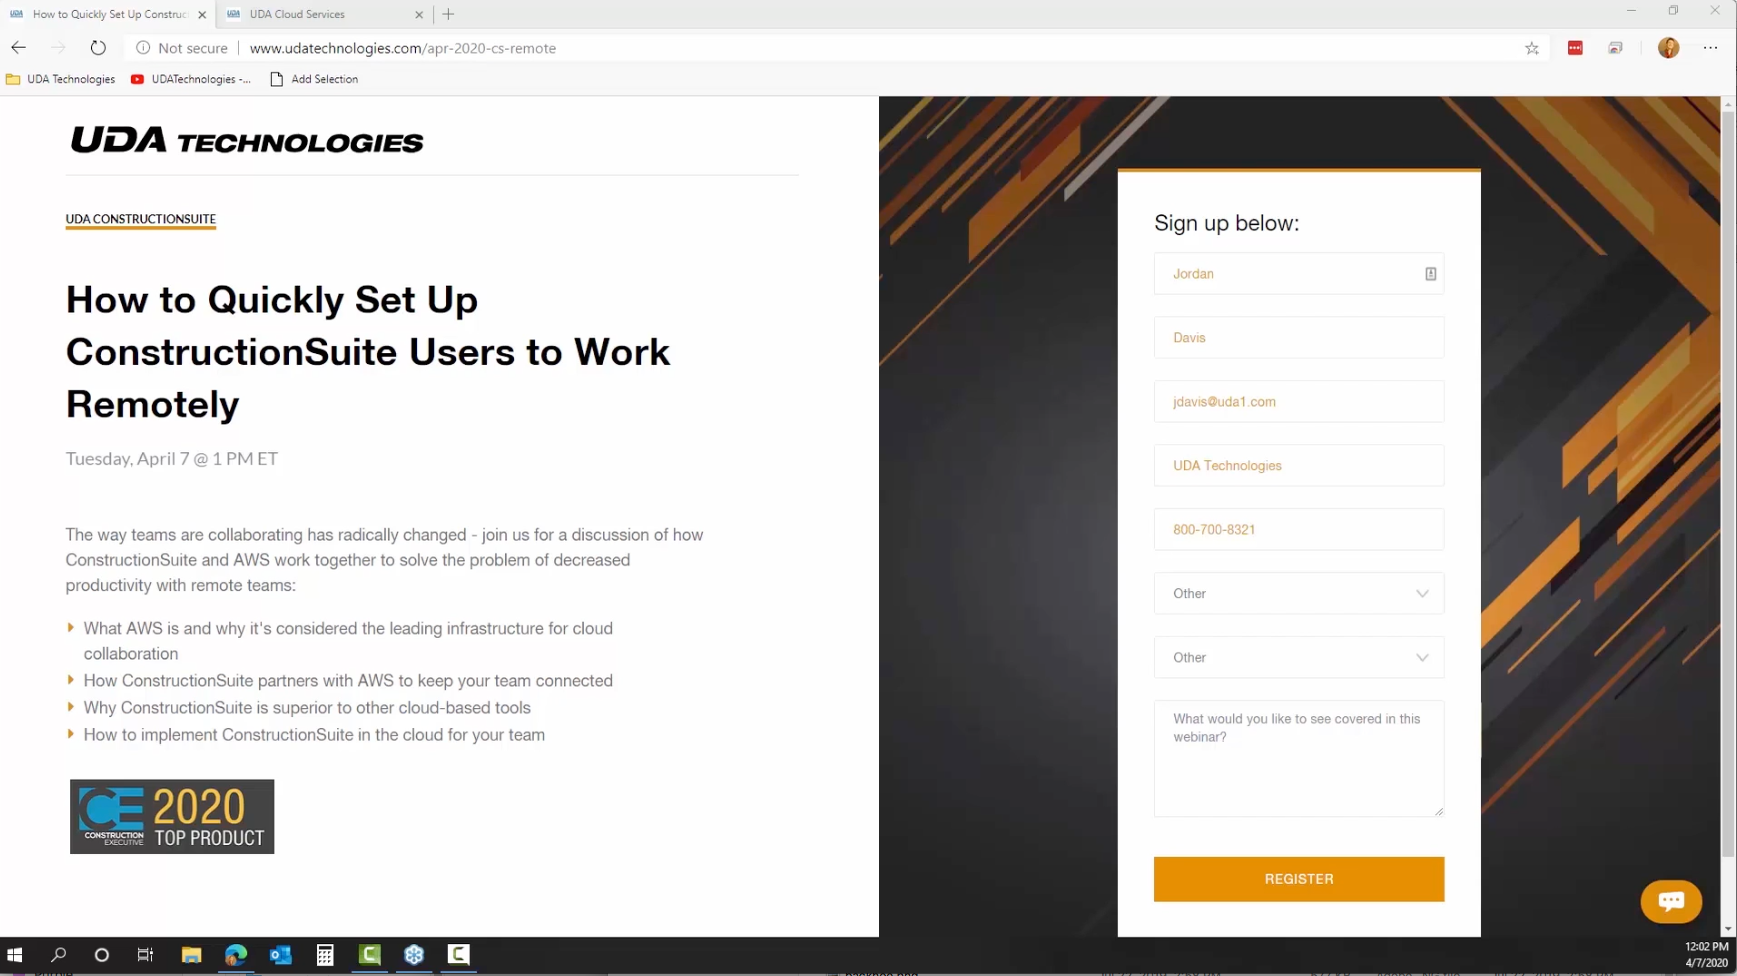 How to Quickly Set Up ConstructionSuite Users to Work Remotely